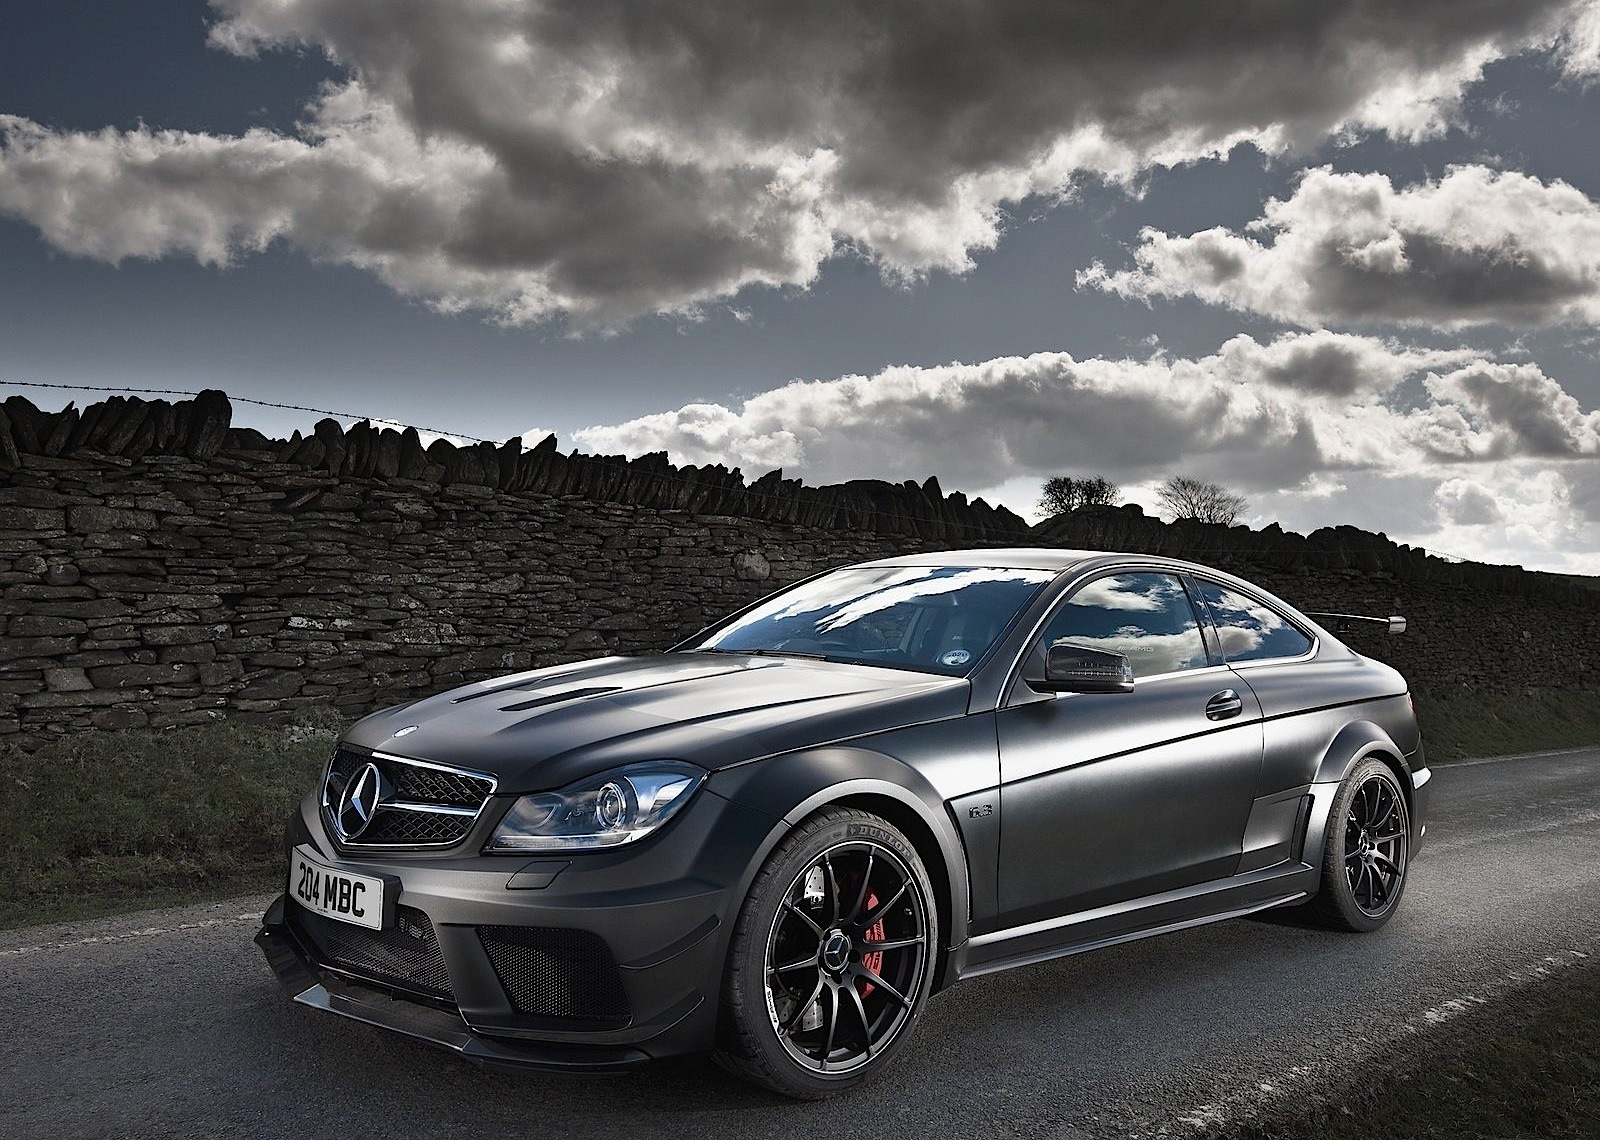 Mercedes Benz C 63 Amg Coupe Black Series C204 Specs 2011 2012 2013 2014 Autoevolution